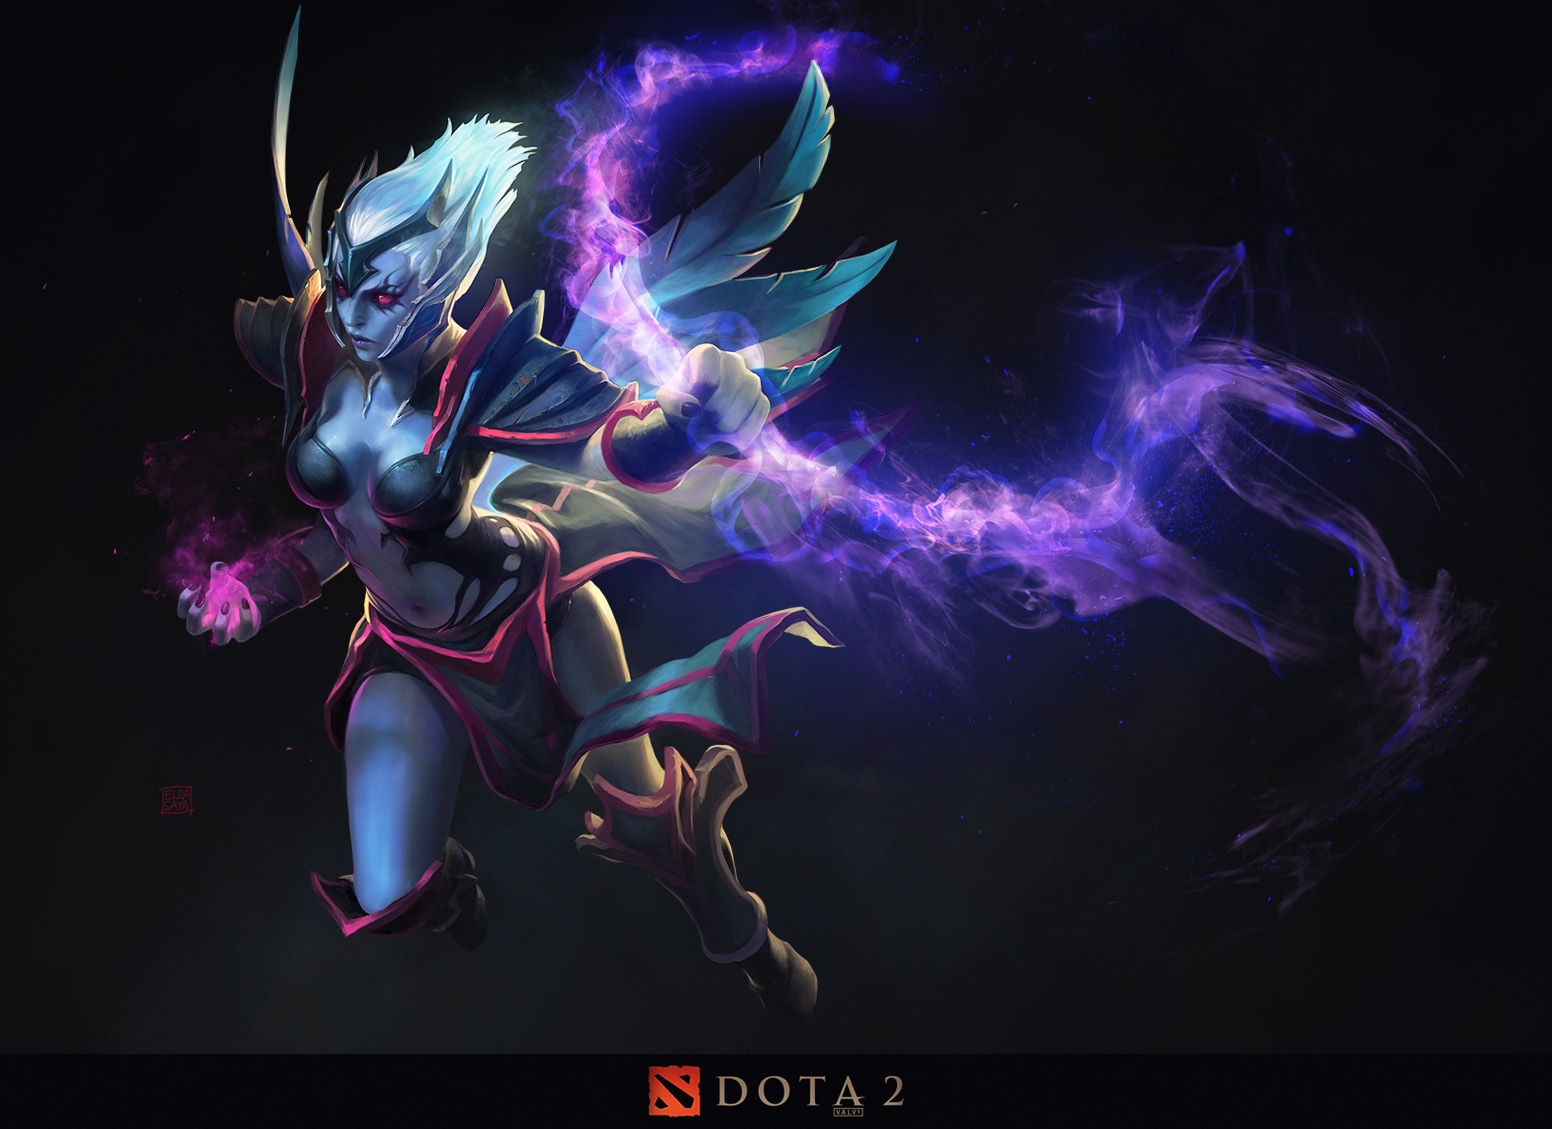 dota2 wallpapers.seoplus.com.ua 39